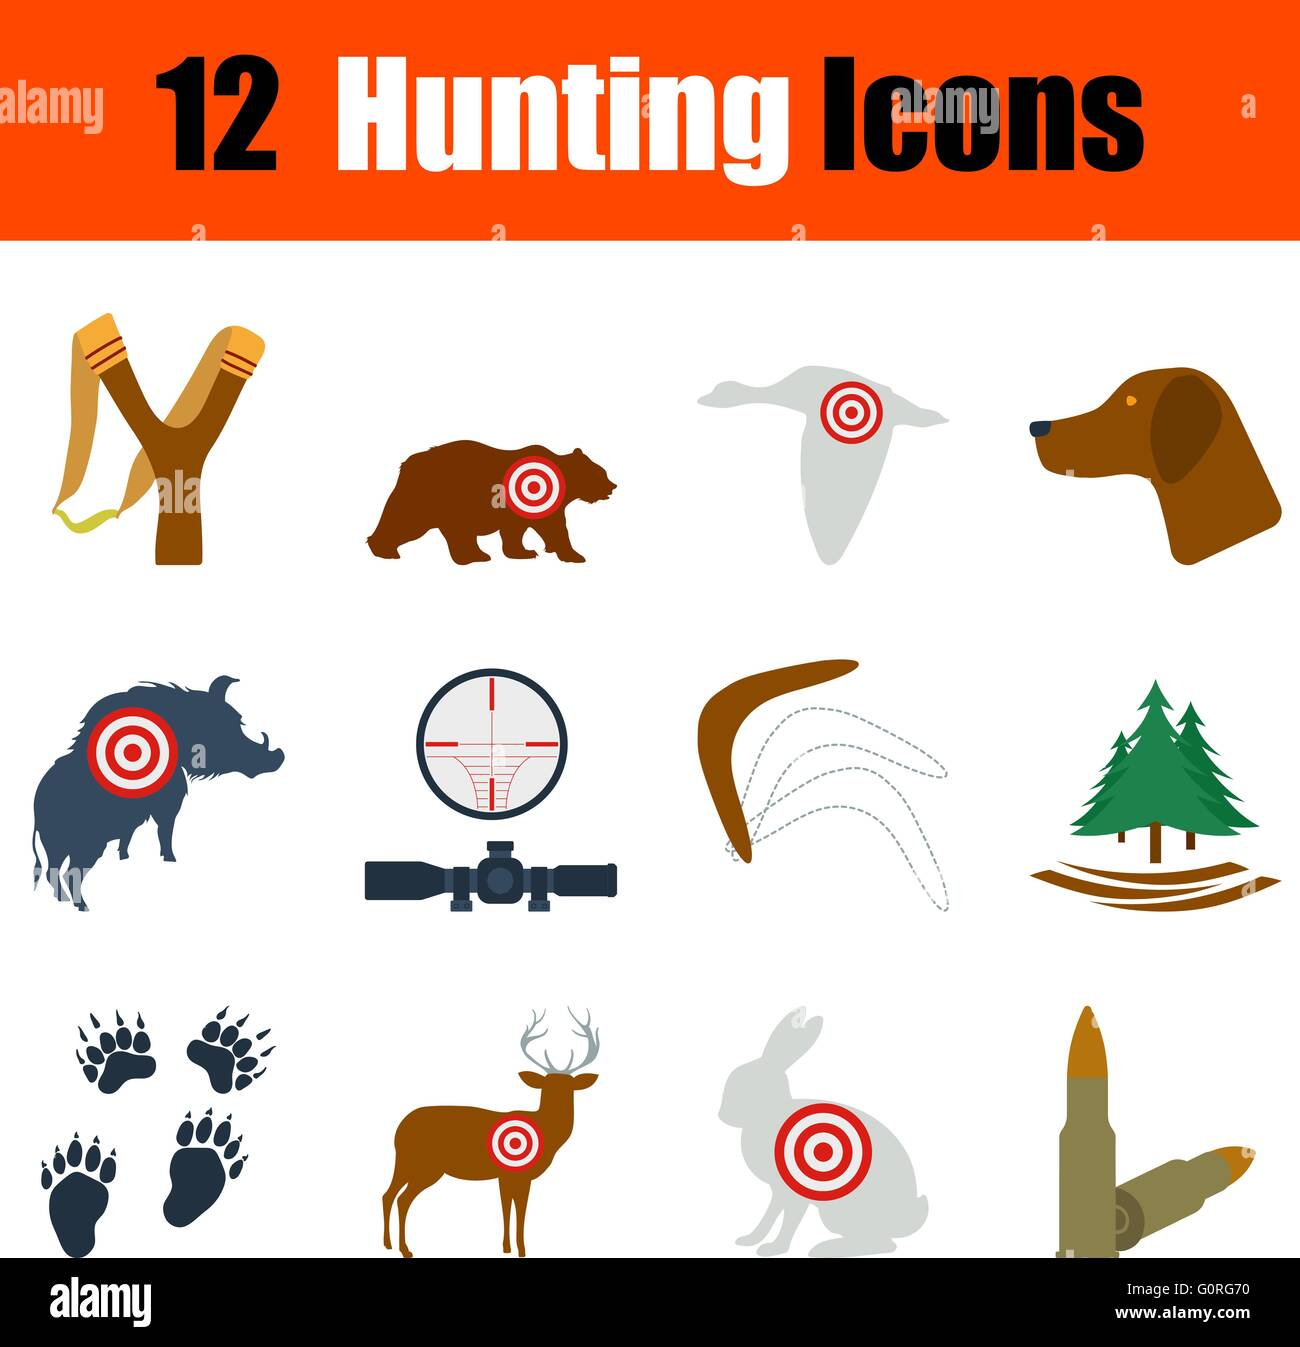 Flat design hunting icon set in ui colors. Vector illustration. Stock Vector